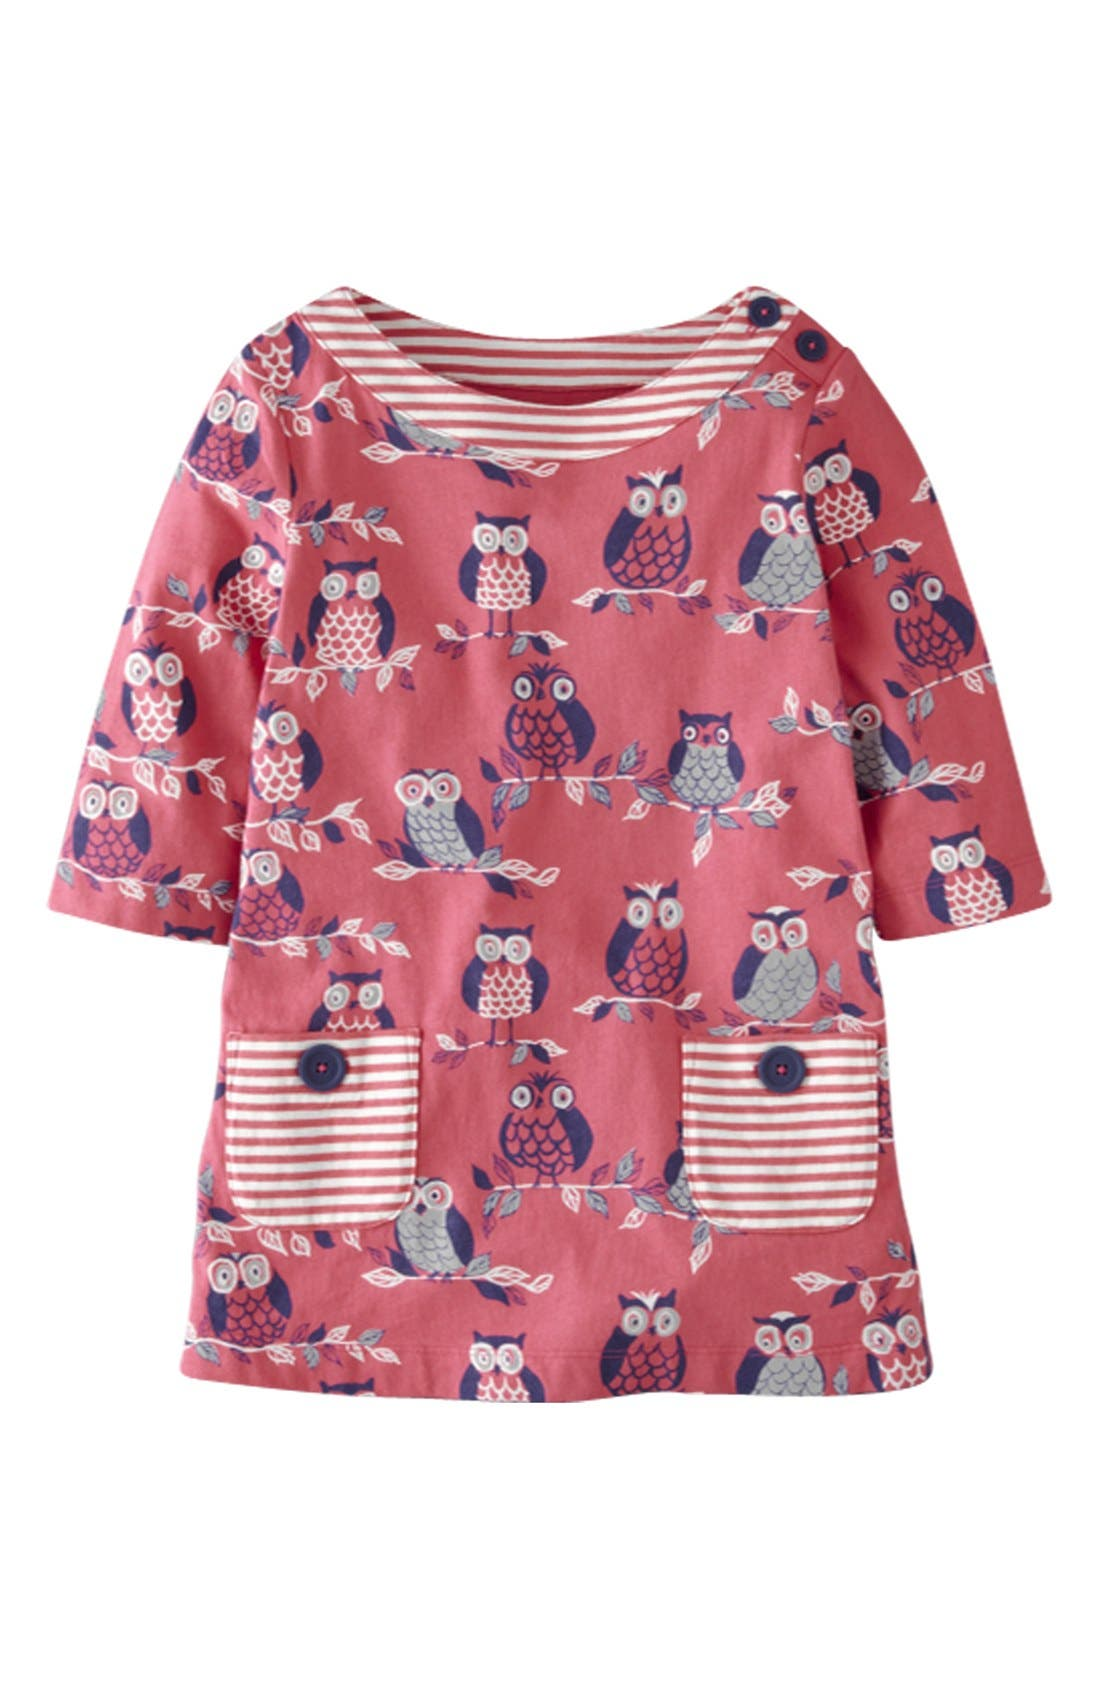 Alternate Image 1 Selected - Mini Boden Print Tunic Top (Toddler Girls)